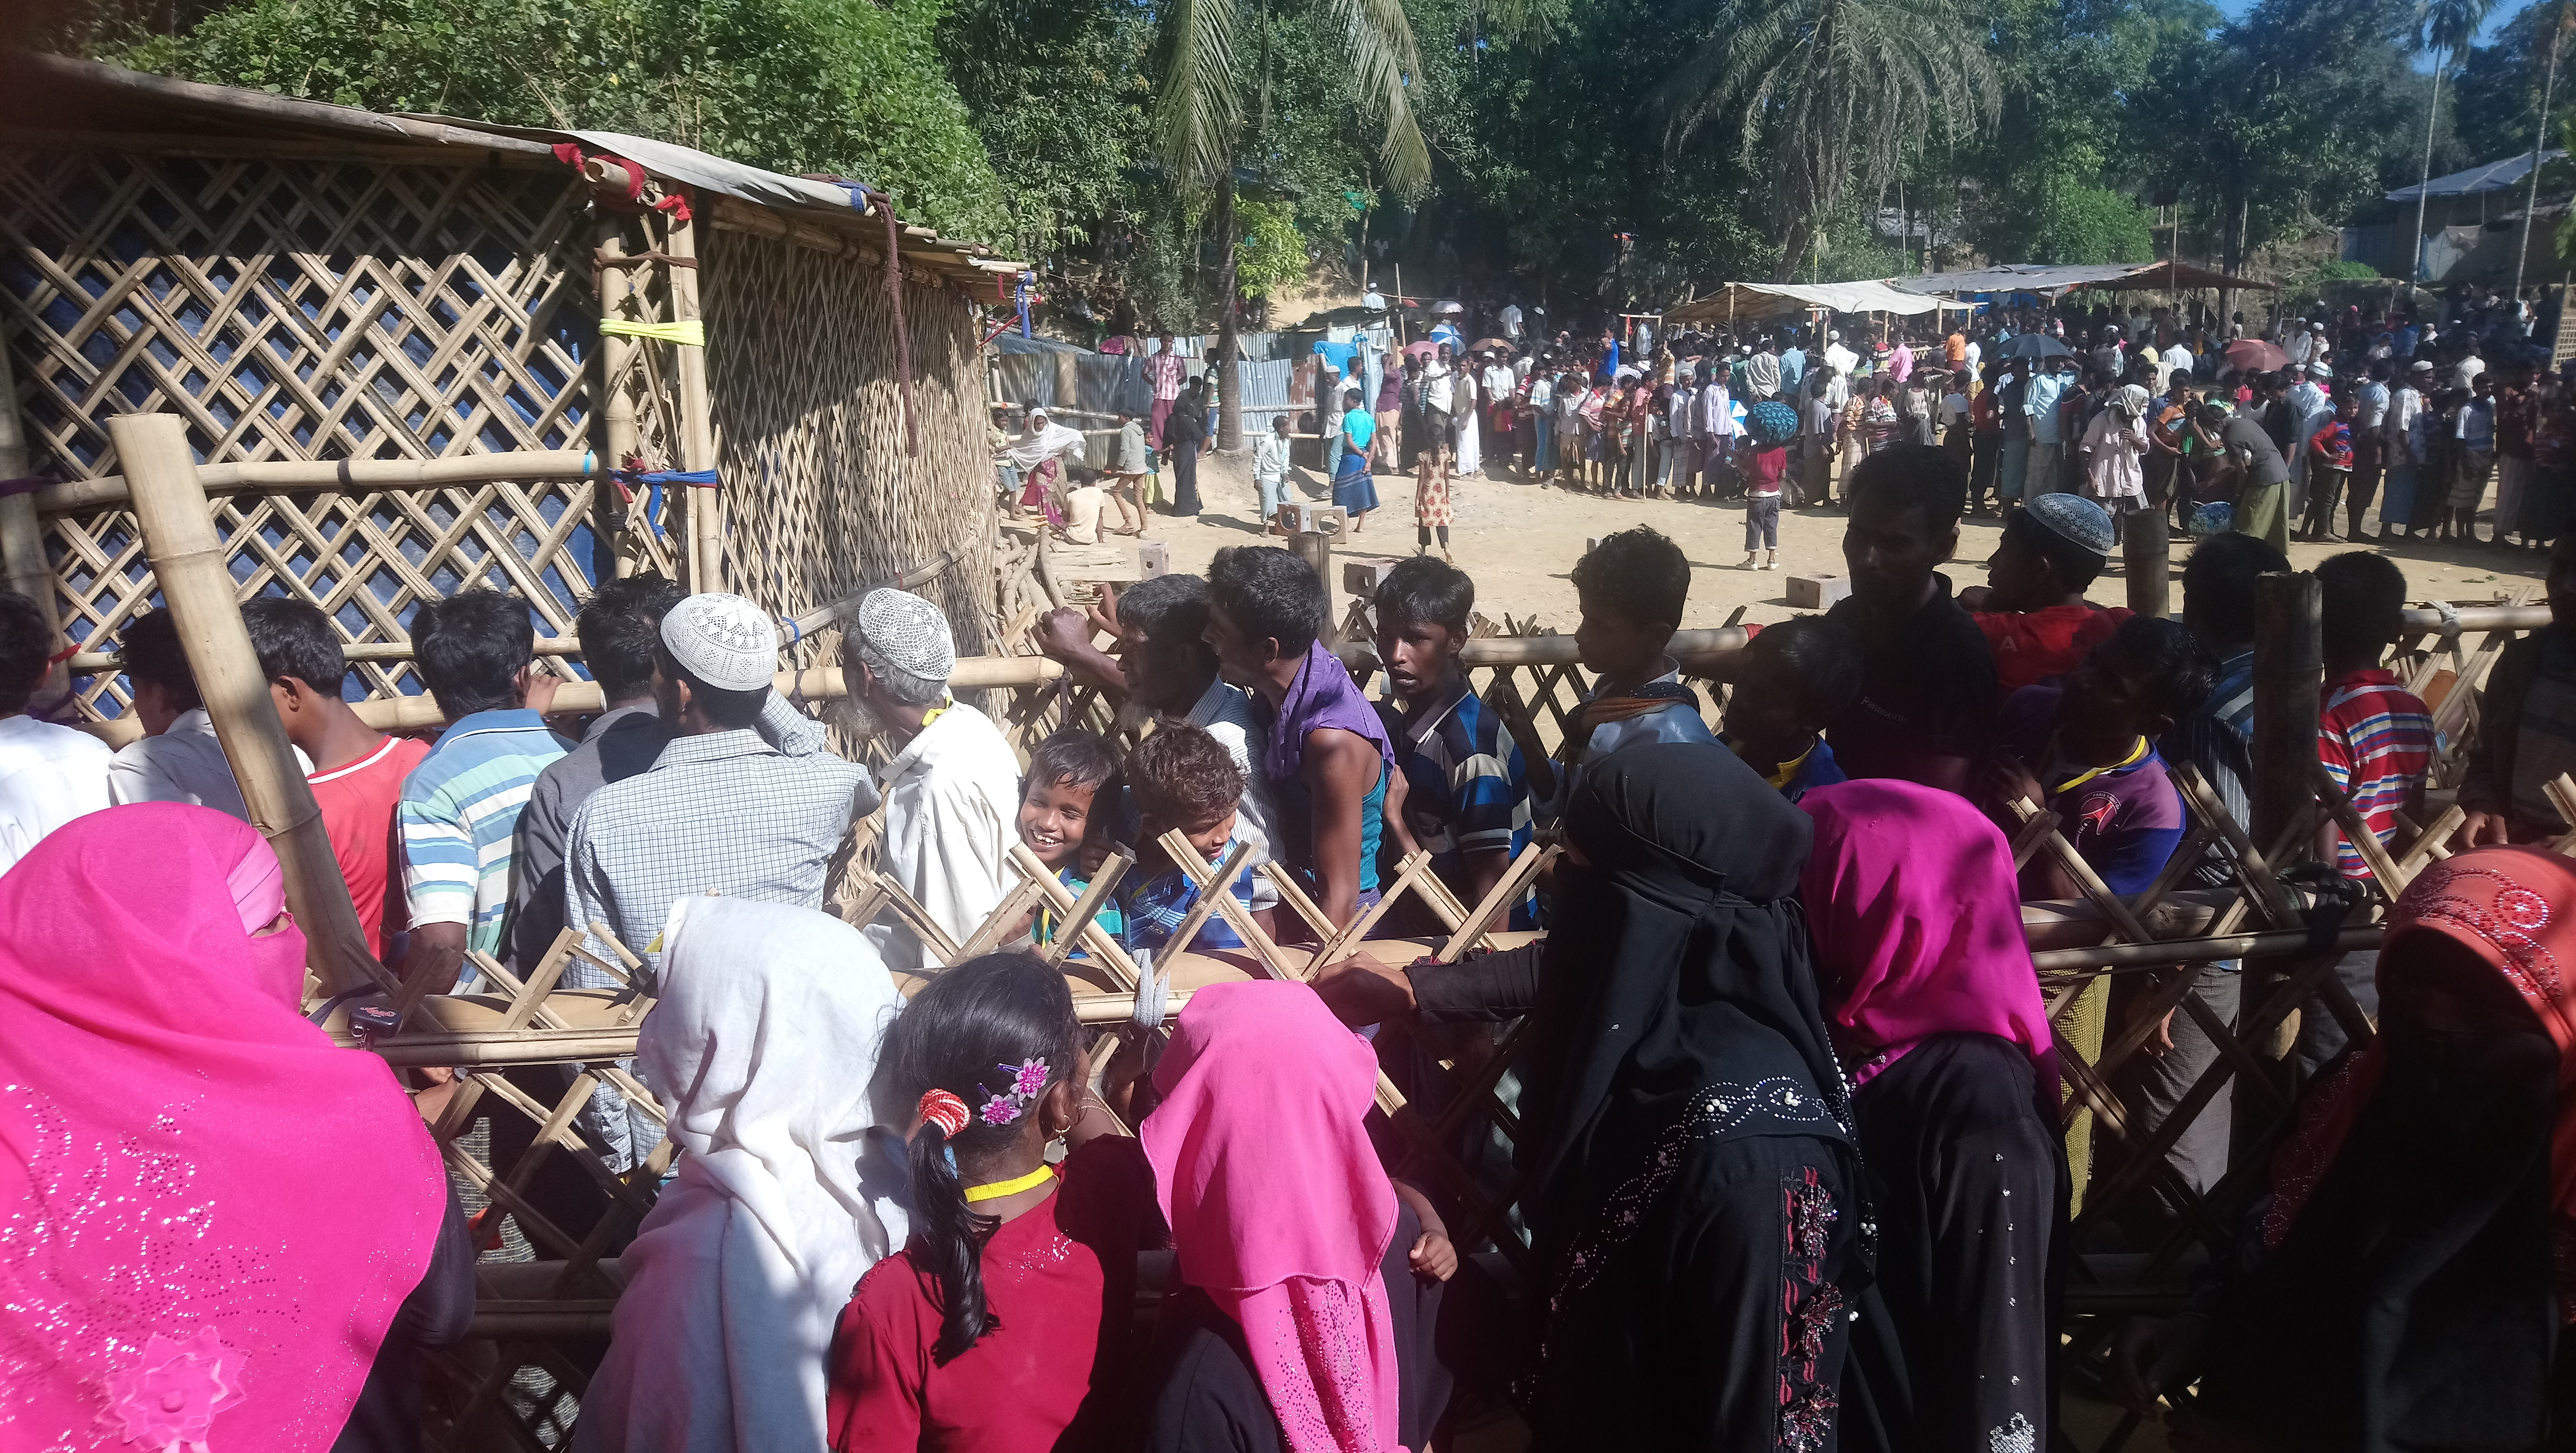 06 In the Rohingya Refugee Camps, Cox's Bazar, Bangladesh